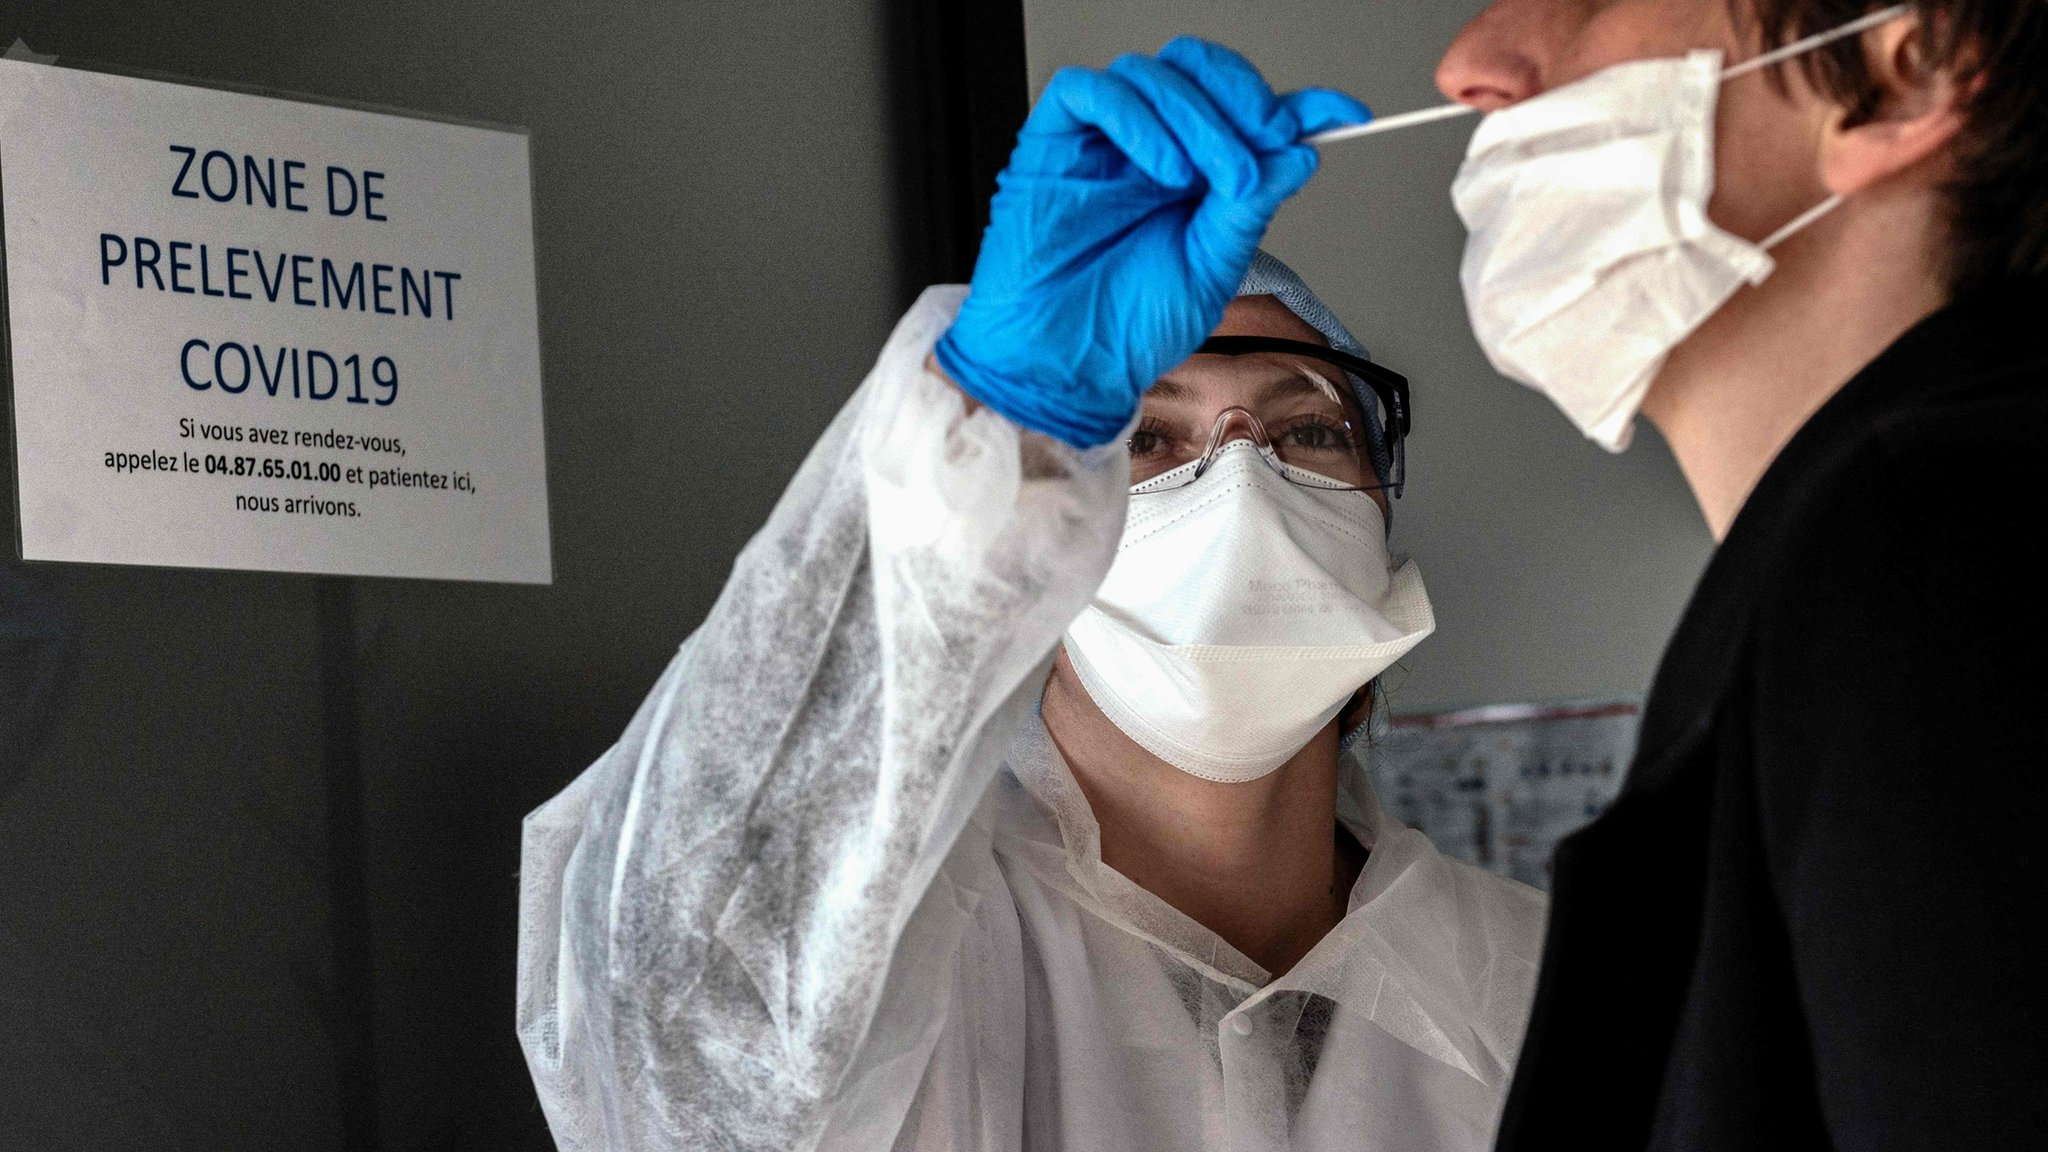 A person is tested for the Covid-19 virus in Villeurbanne, France (23 March 2020)